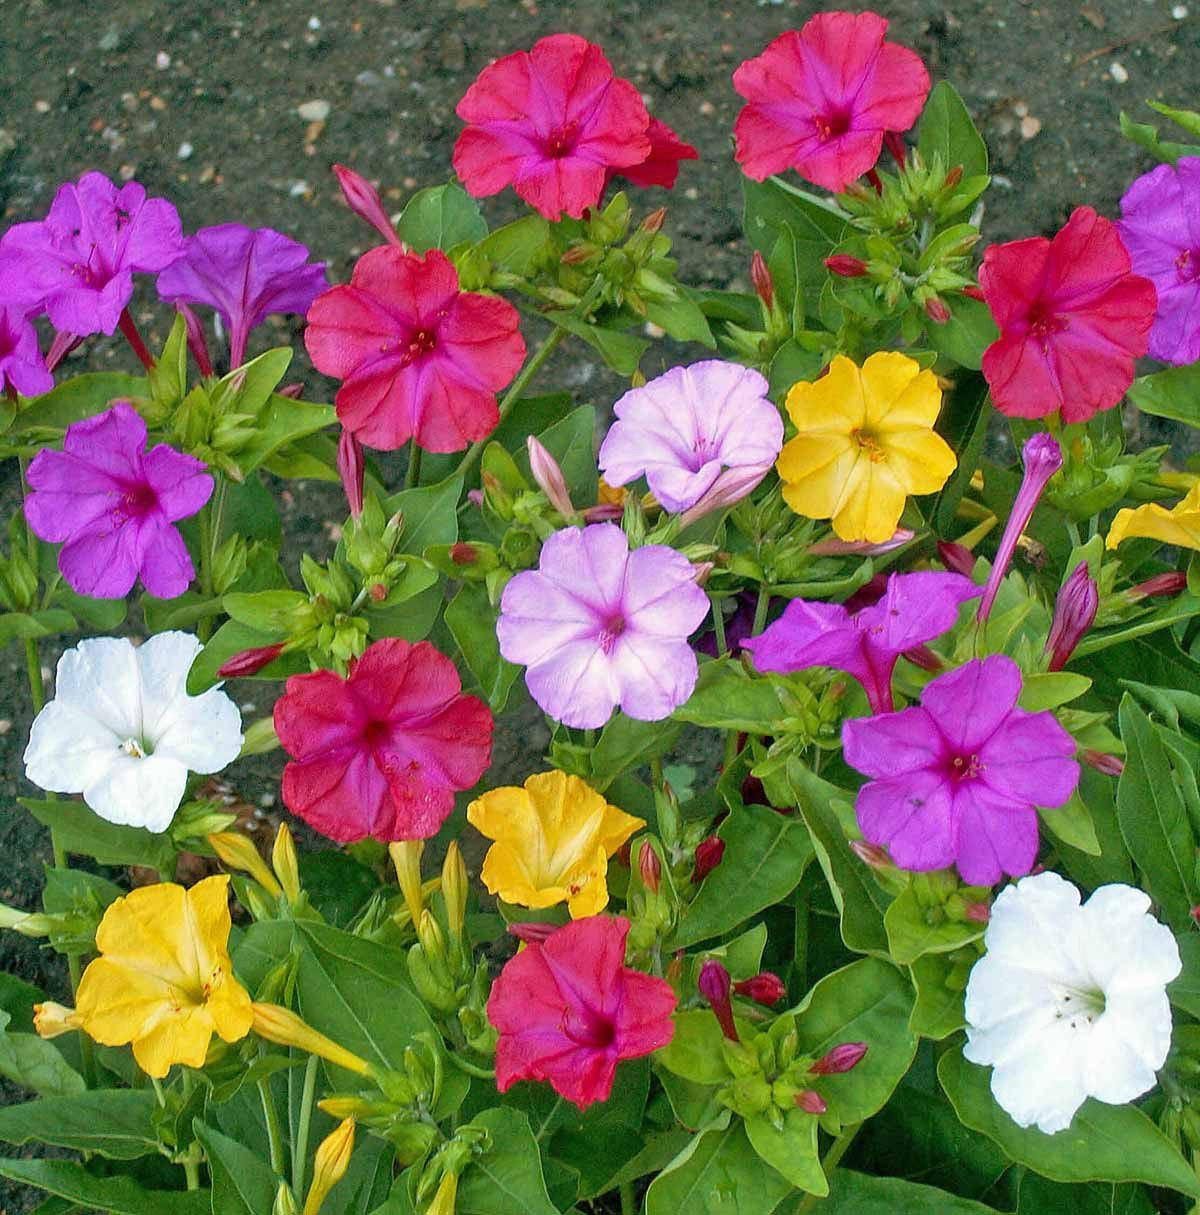 Four Oclock Flowers Seedmirabilis Jalapa Mix Yellow Red White